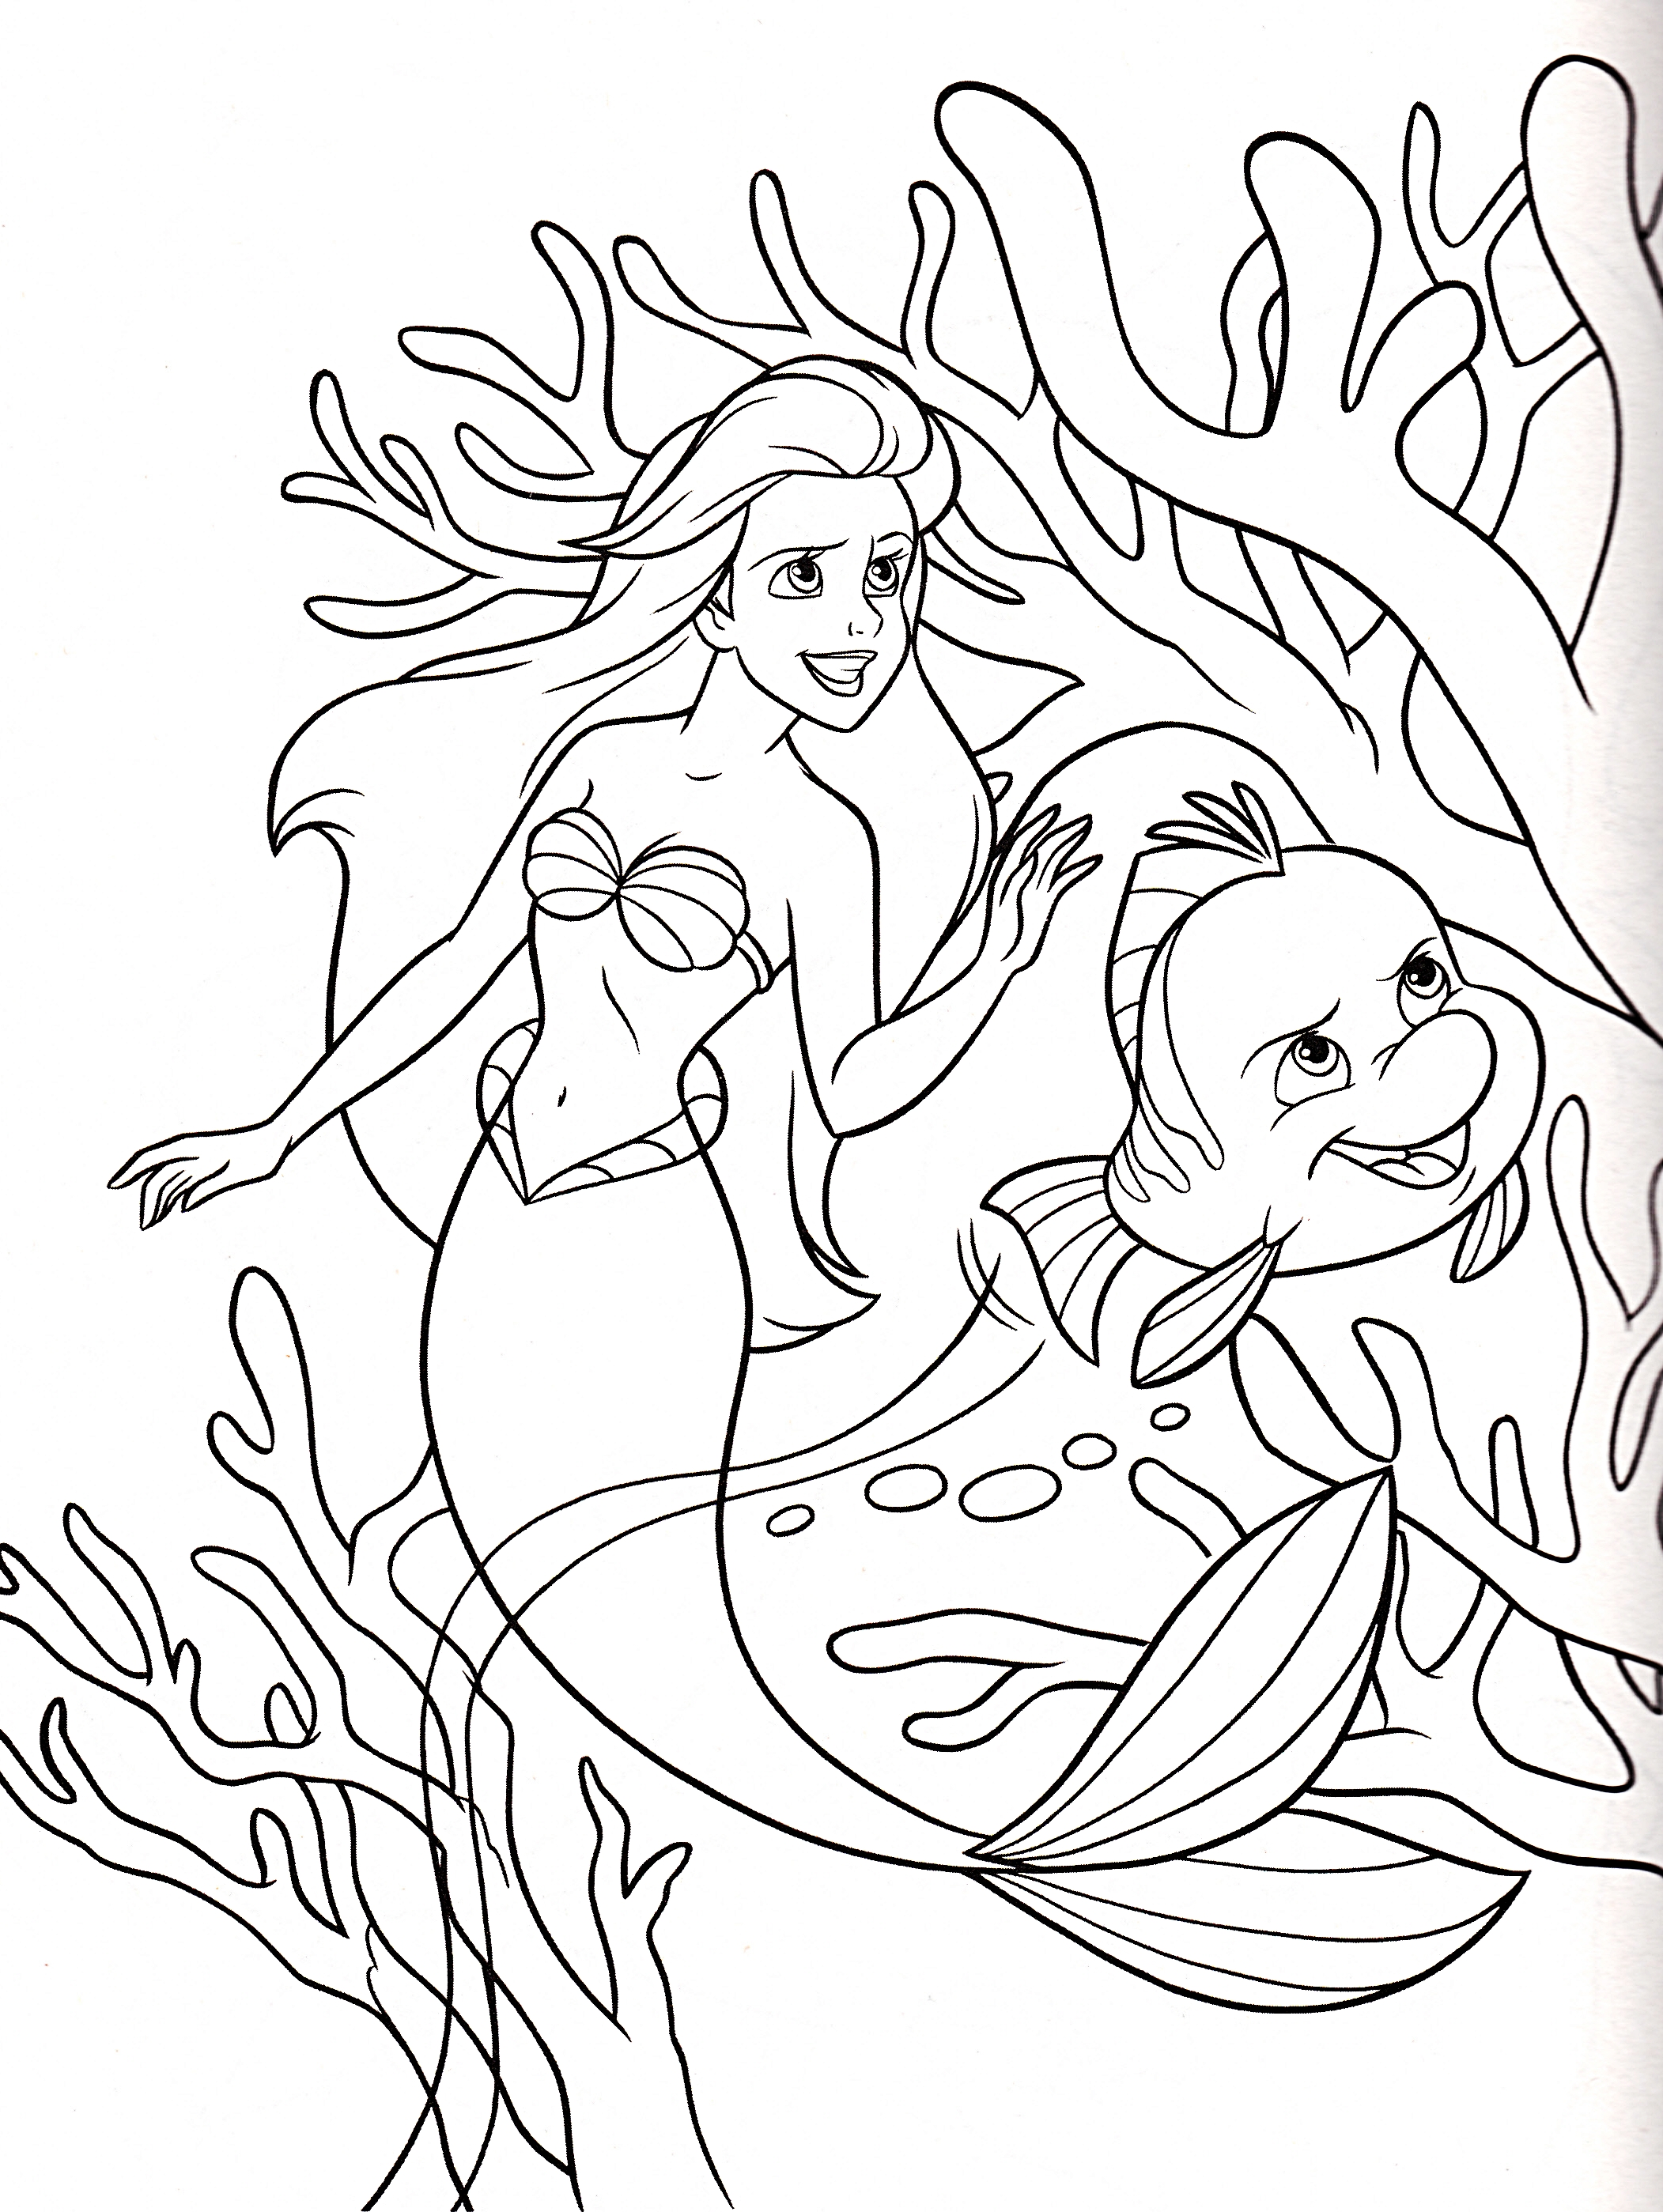 Free Coloring Pages For Toddlers Disney : Disney coloring pages kids